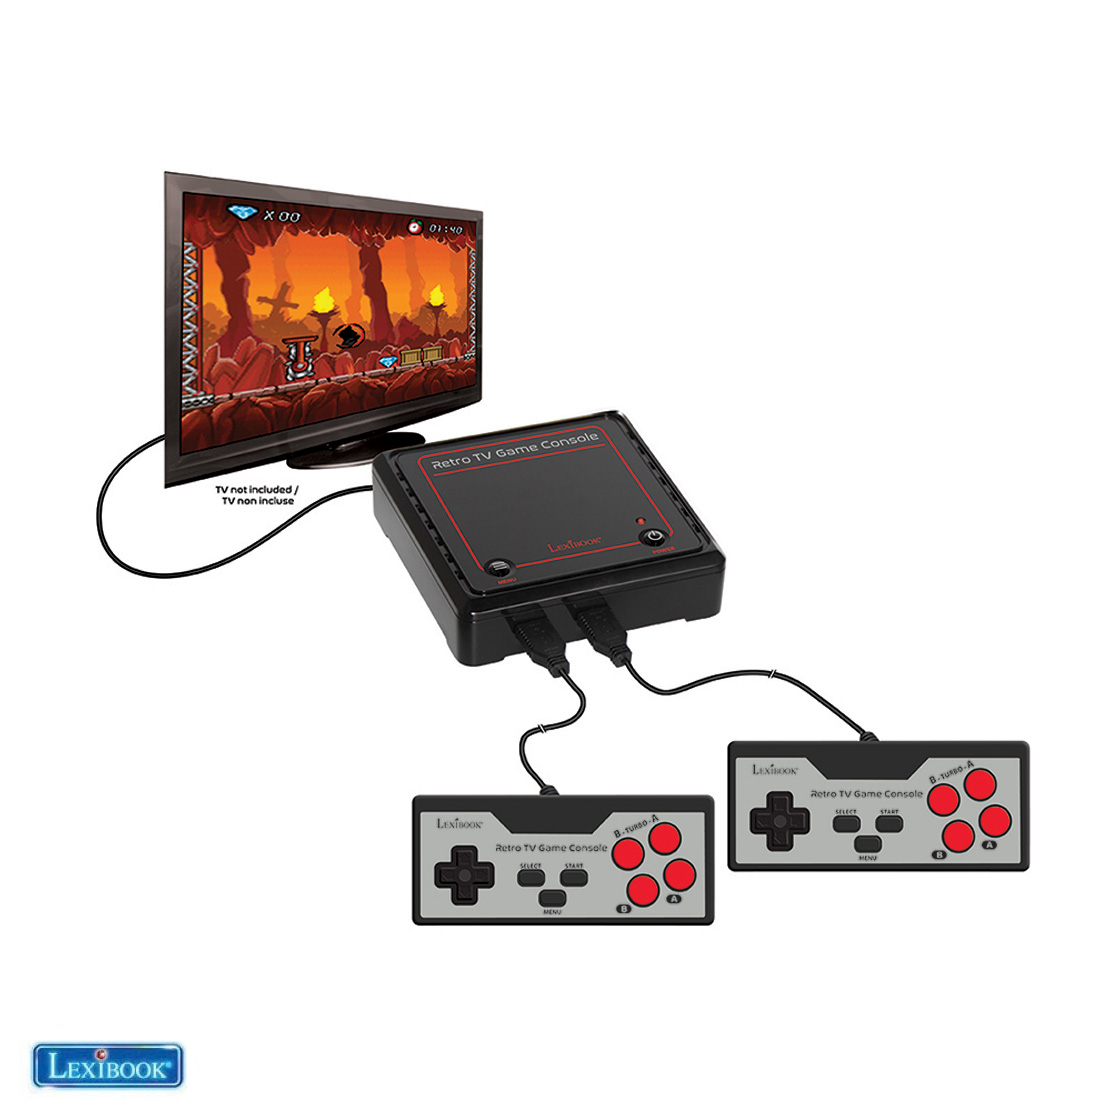 Toys : Plug 'N Play TV Game Console - 300 games